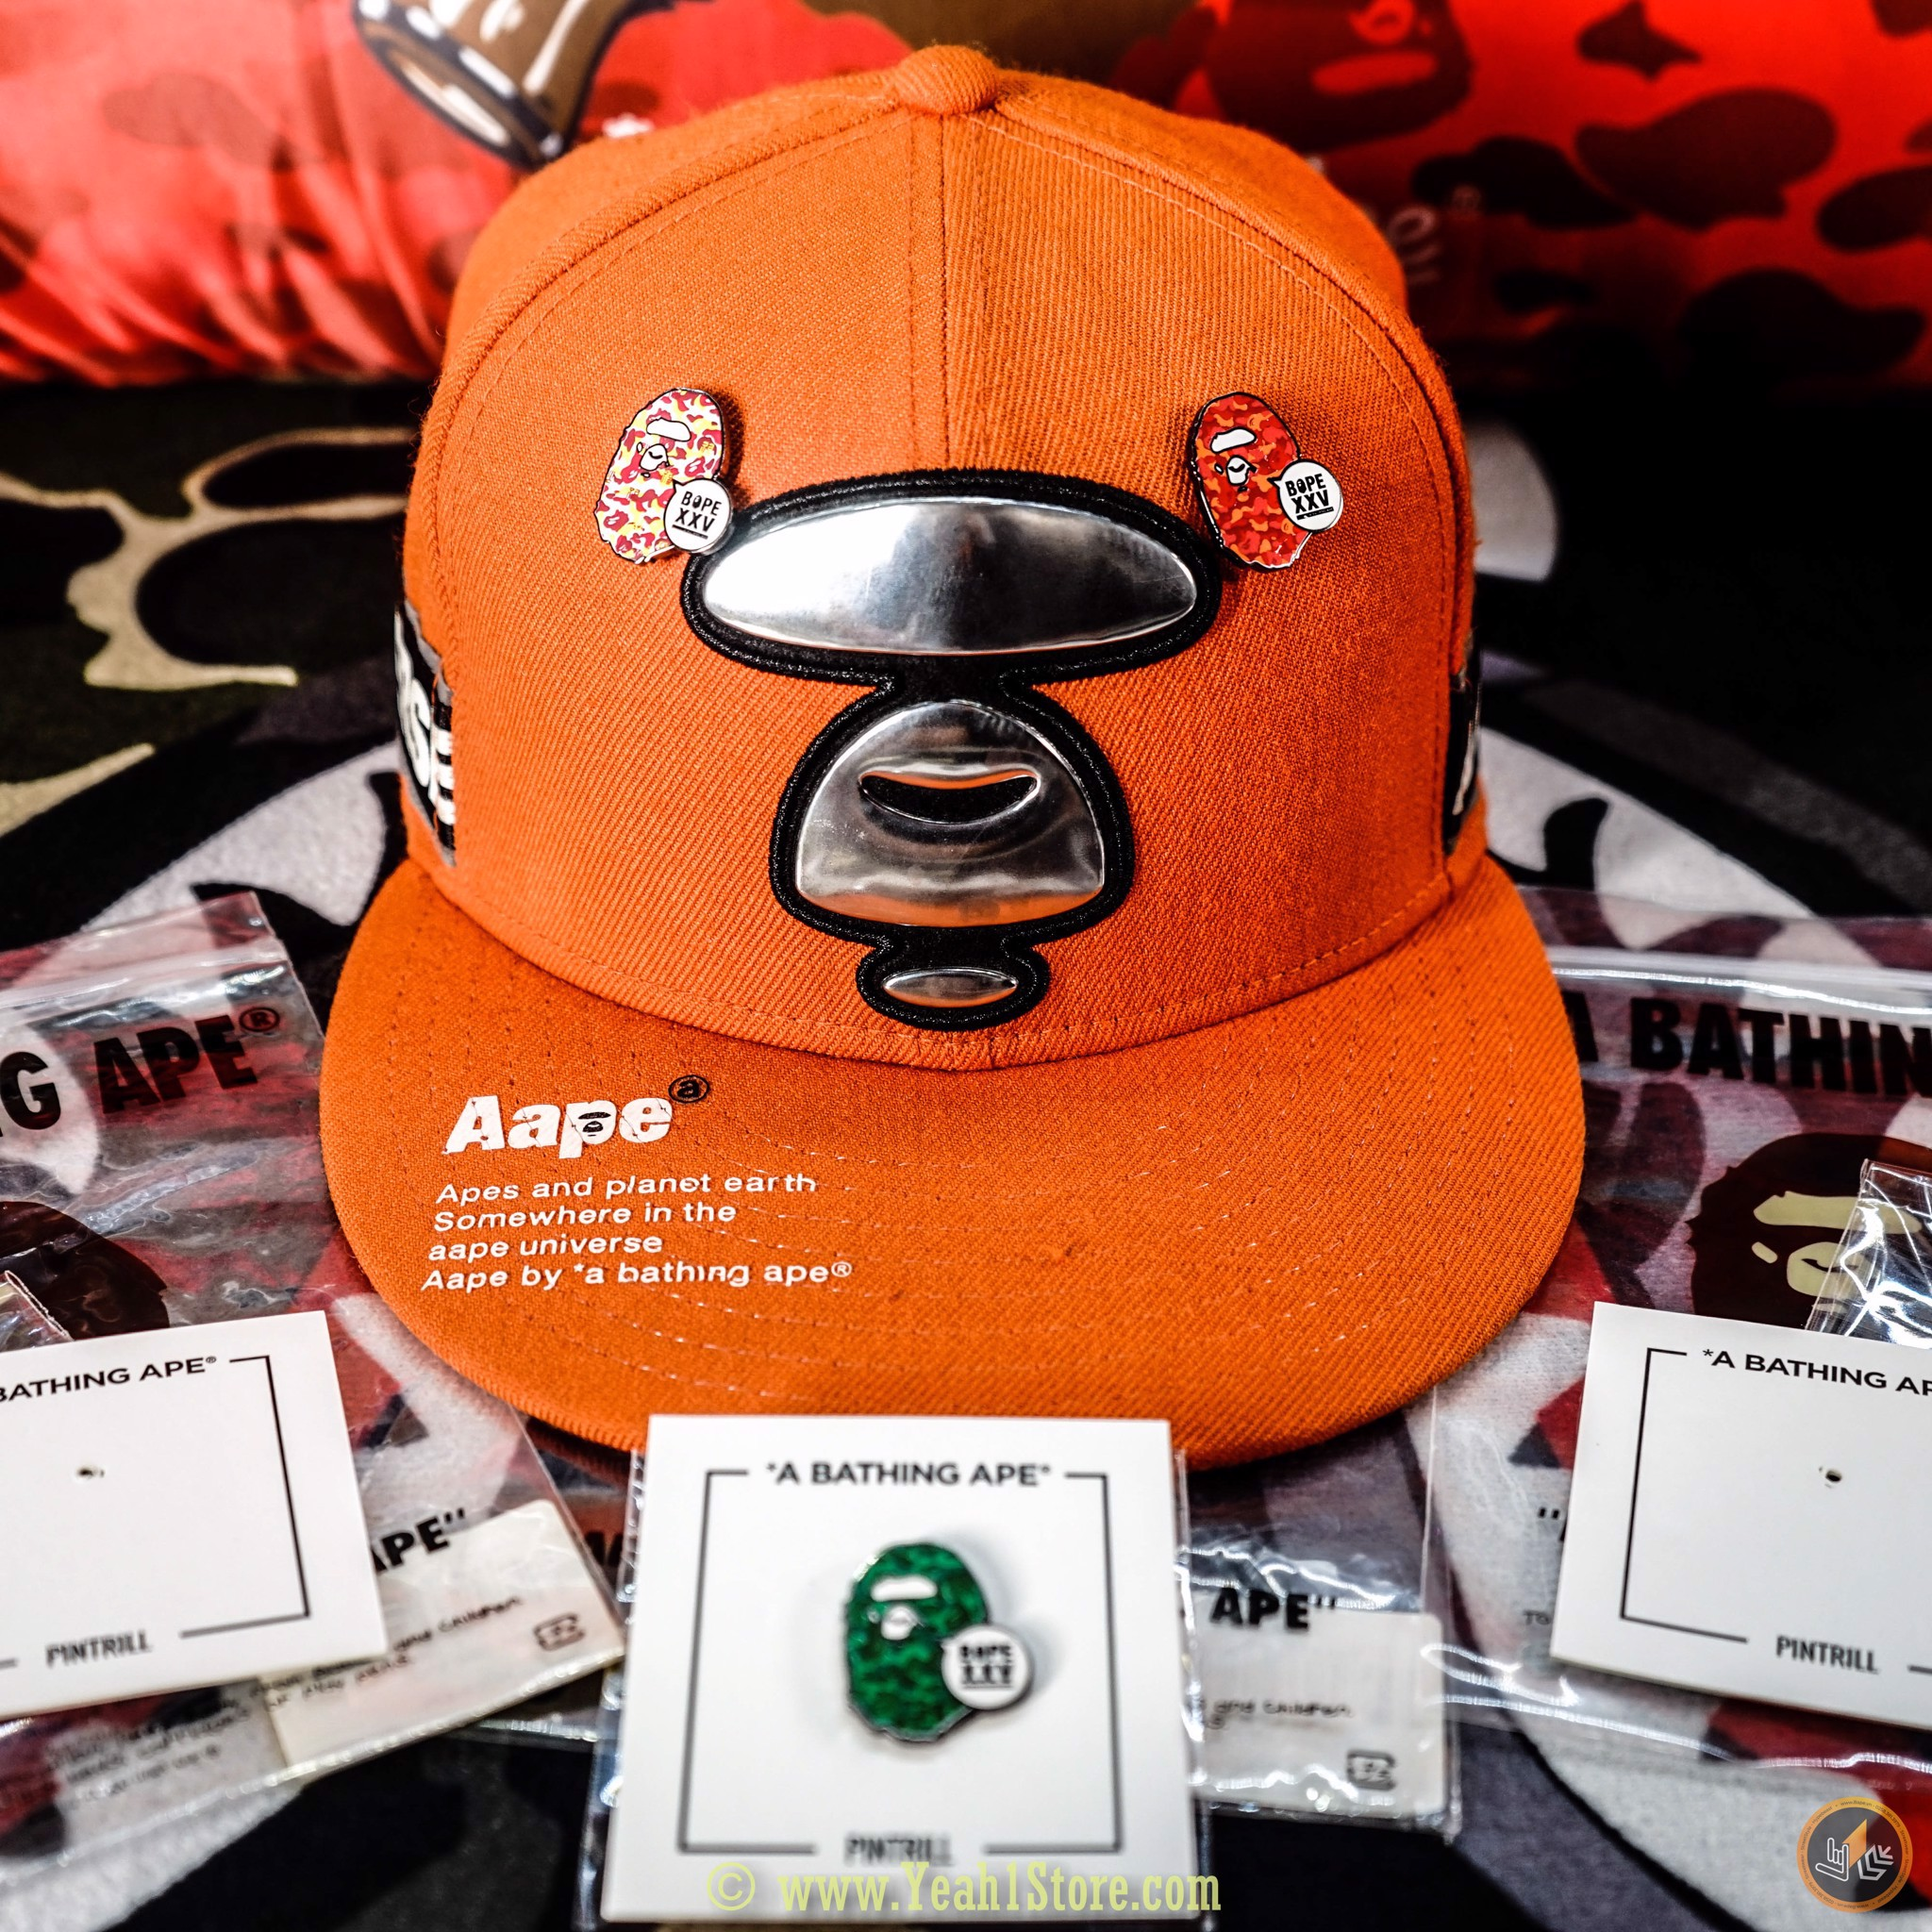 A BATHING APE® PINTRILL APE HEADS XXV (REAL)